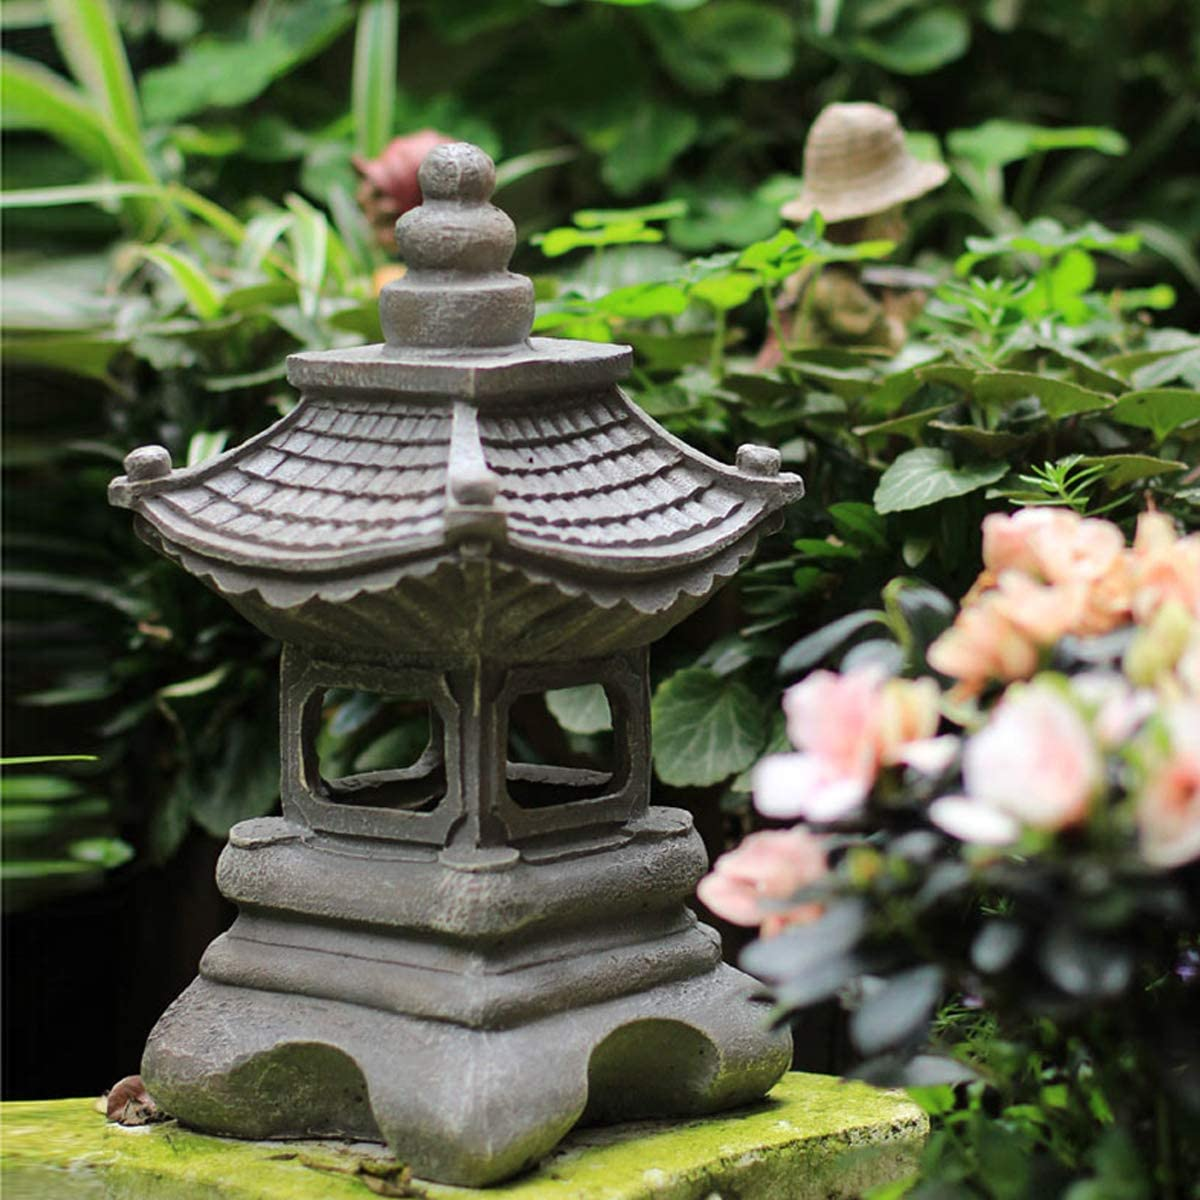 OwMell Japanese Style Asian Decor Pagoda Lantern Indoor Outdoor